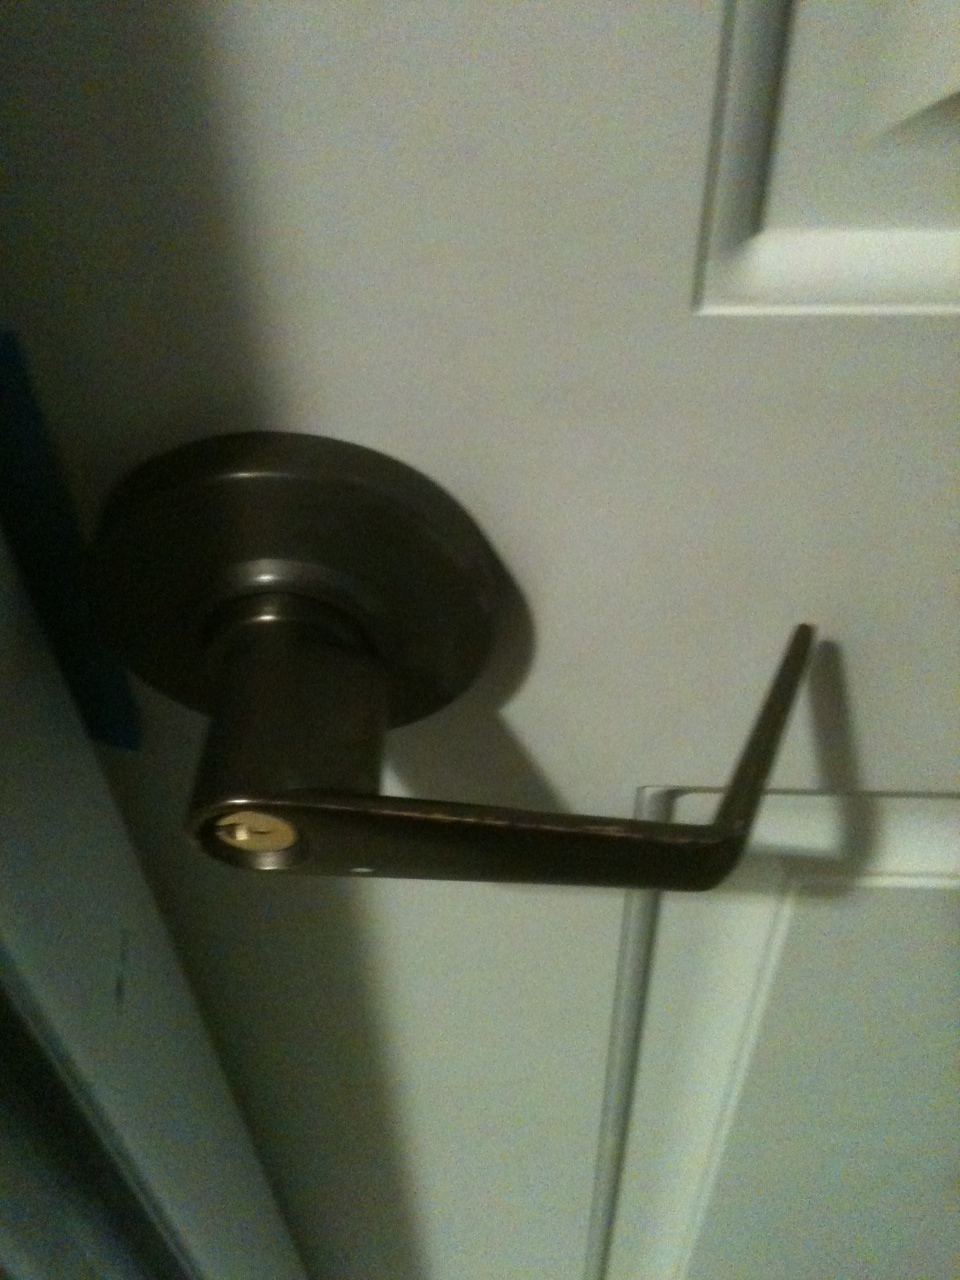 handicap door knobs photo - 12